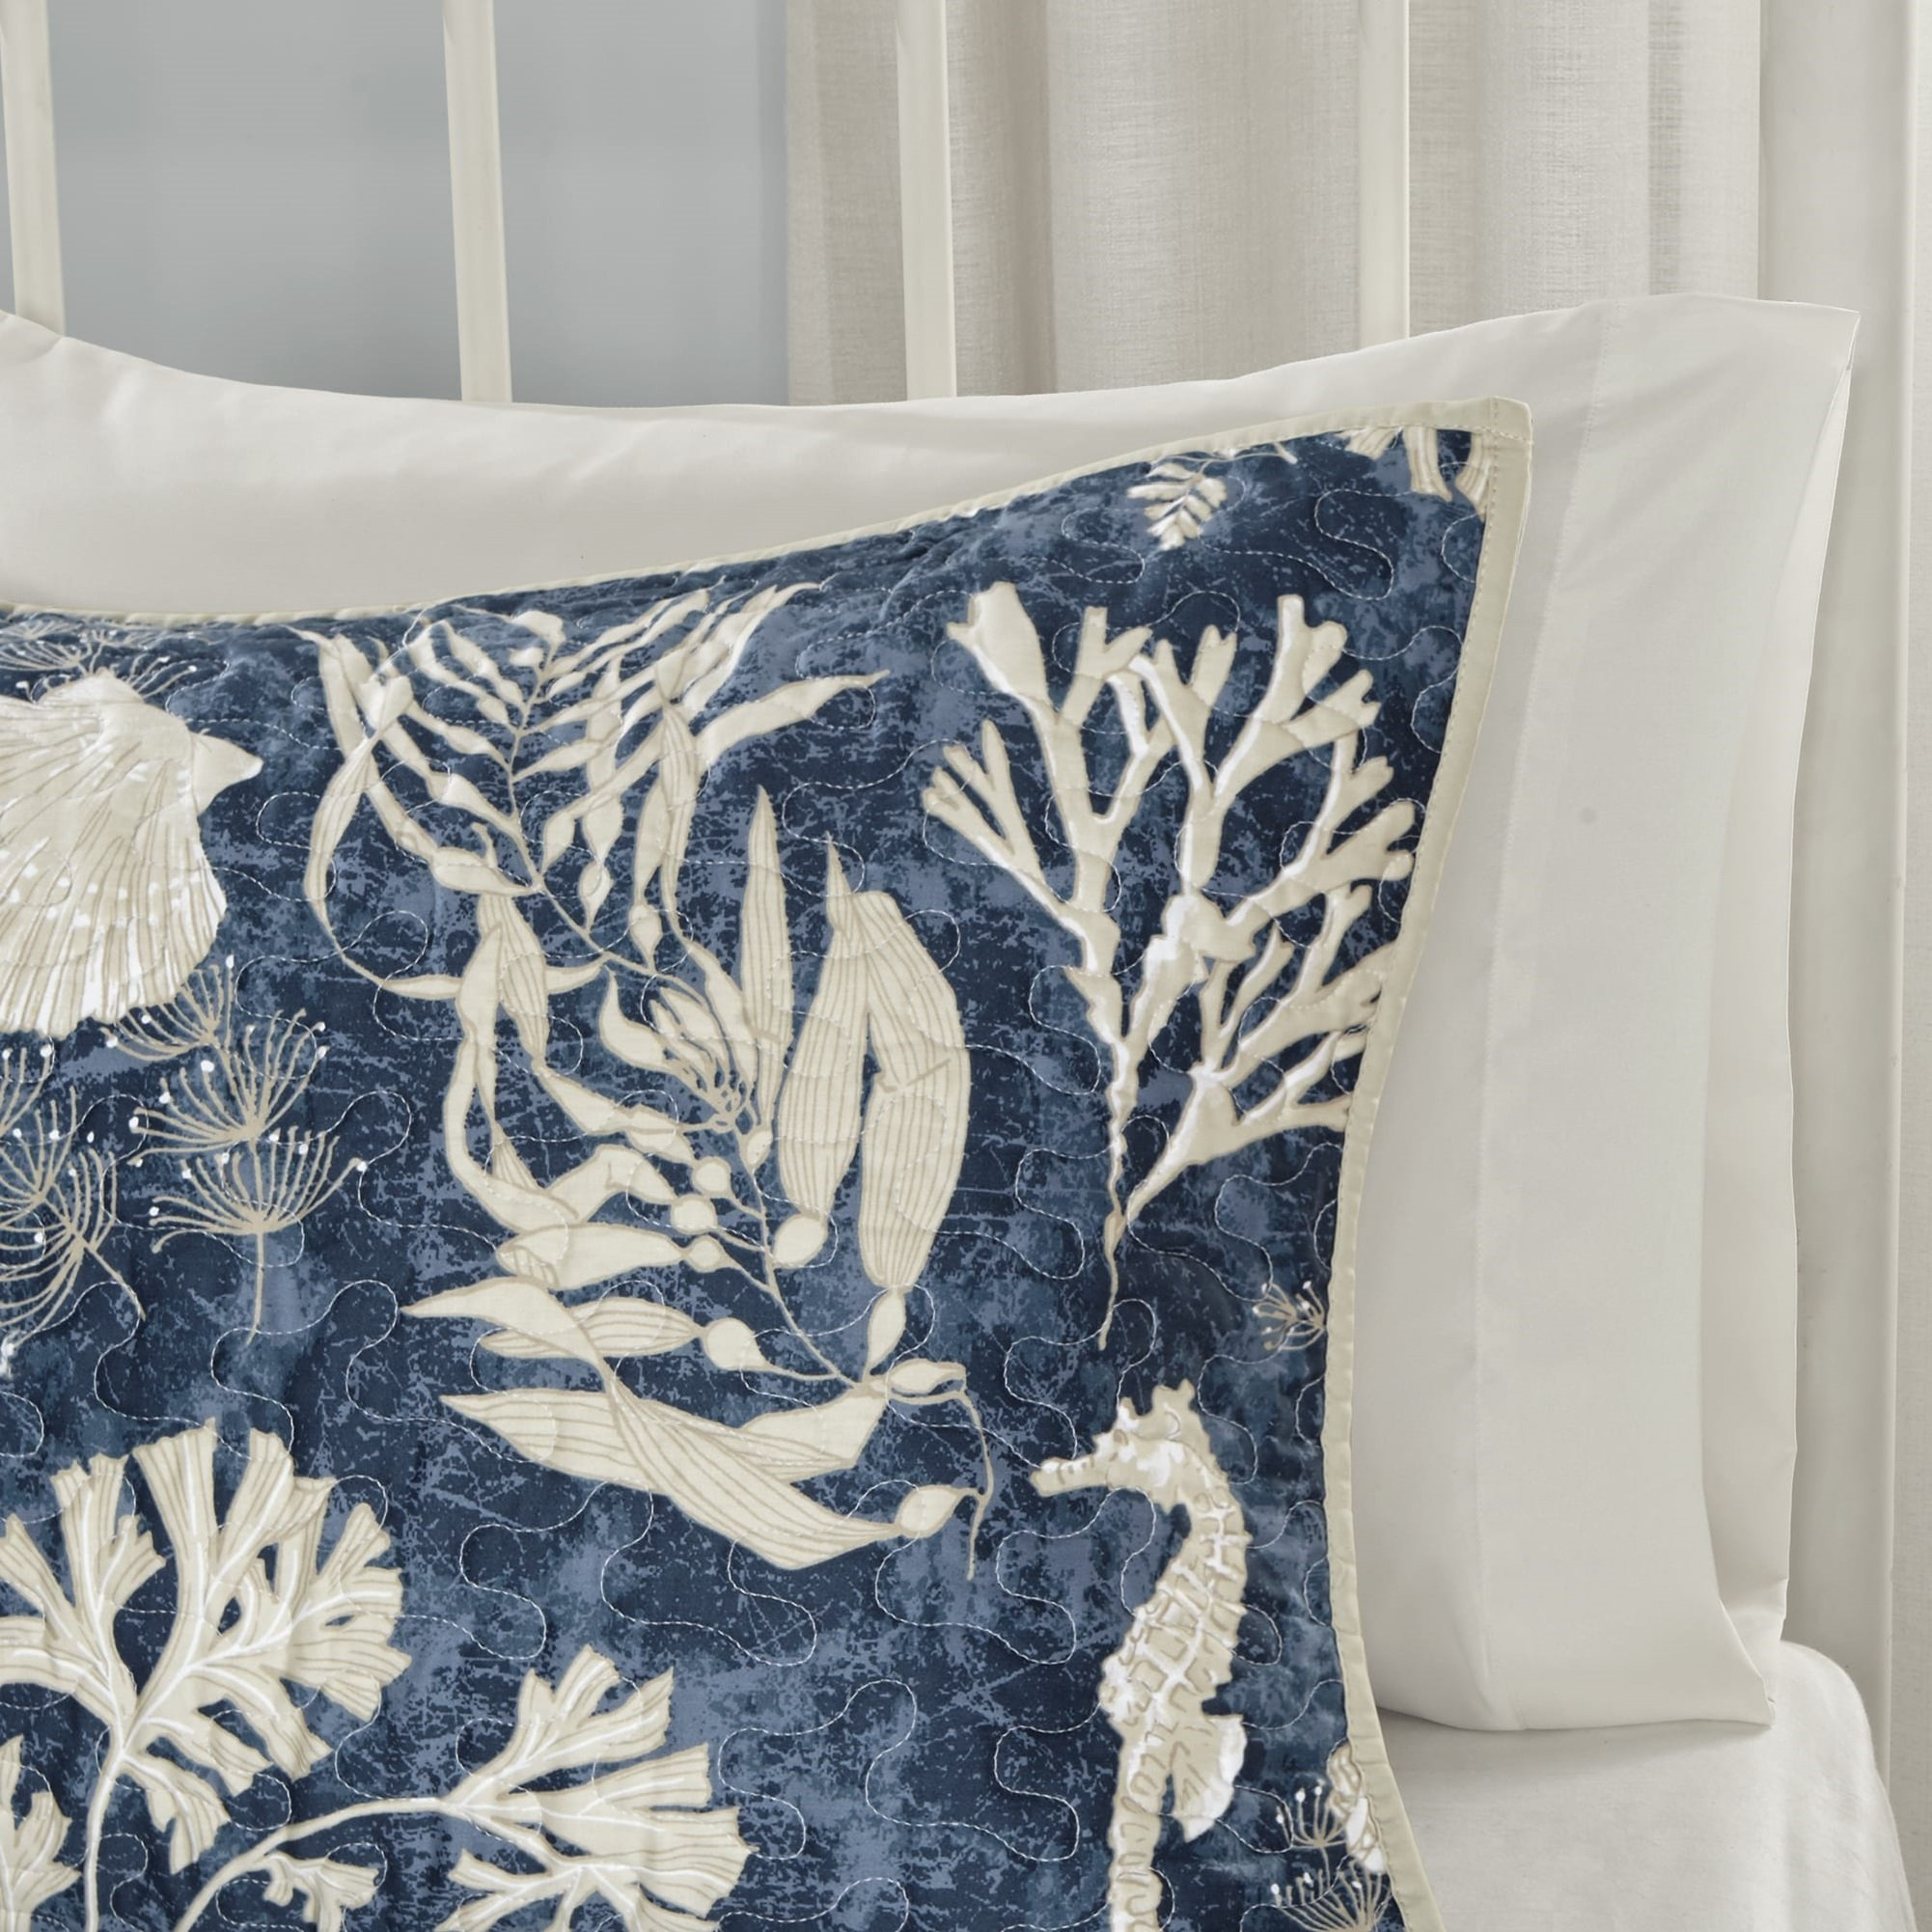 6 Piece Underwater Sea Creatures Theme Coverlet Set Full/Queen Size, Printed Coastal Coral Reefs Seahorse Sea Shells Starfish Bedding, Whimsical Rich Nautical Design, Fun Animals Pattern, Navy, Ivory by Shopping Experts (Image #6)